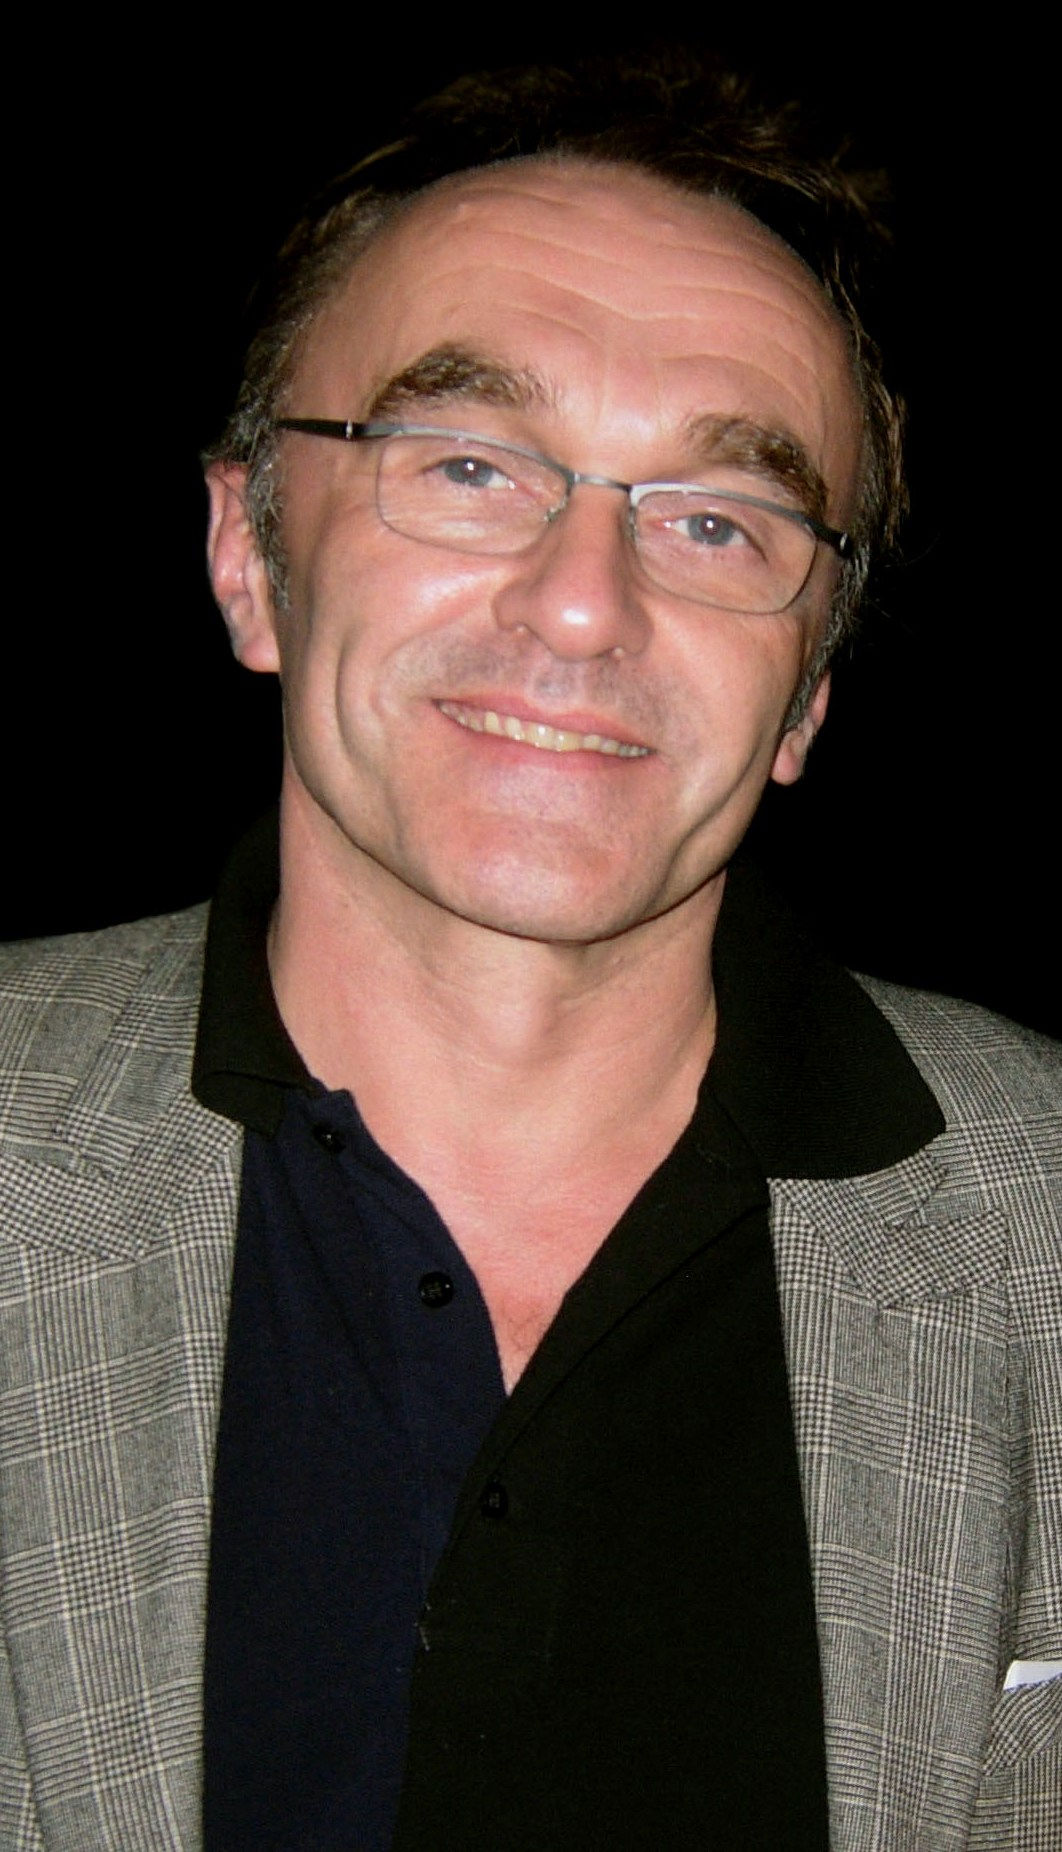 Photo of Danny Boyle: English film director, producer and screenwriter